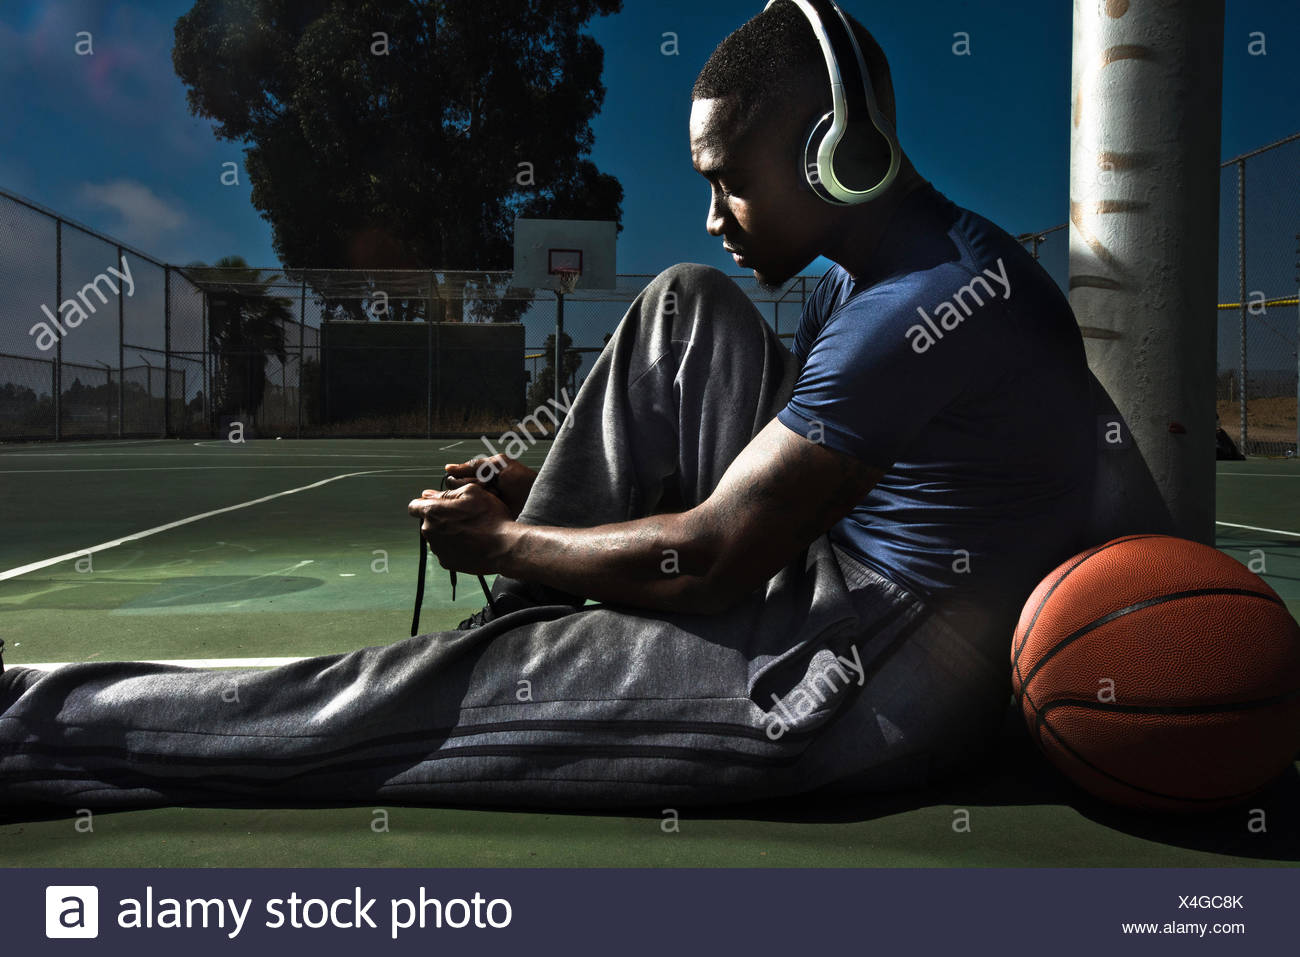 A basketball player laces up his shoes. - Stock Image